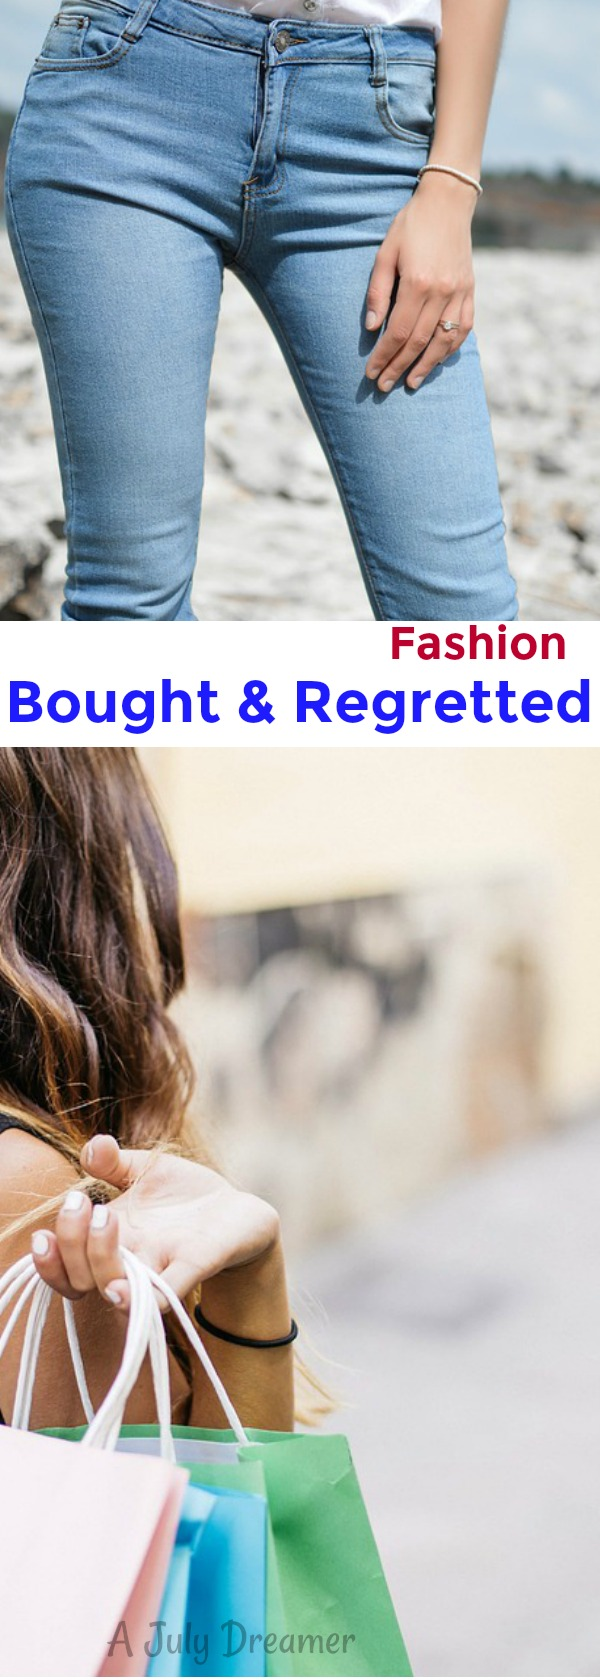 Bought and Regretted